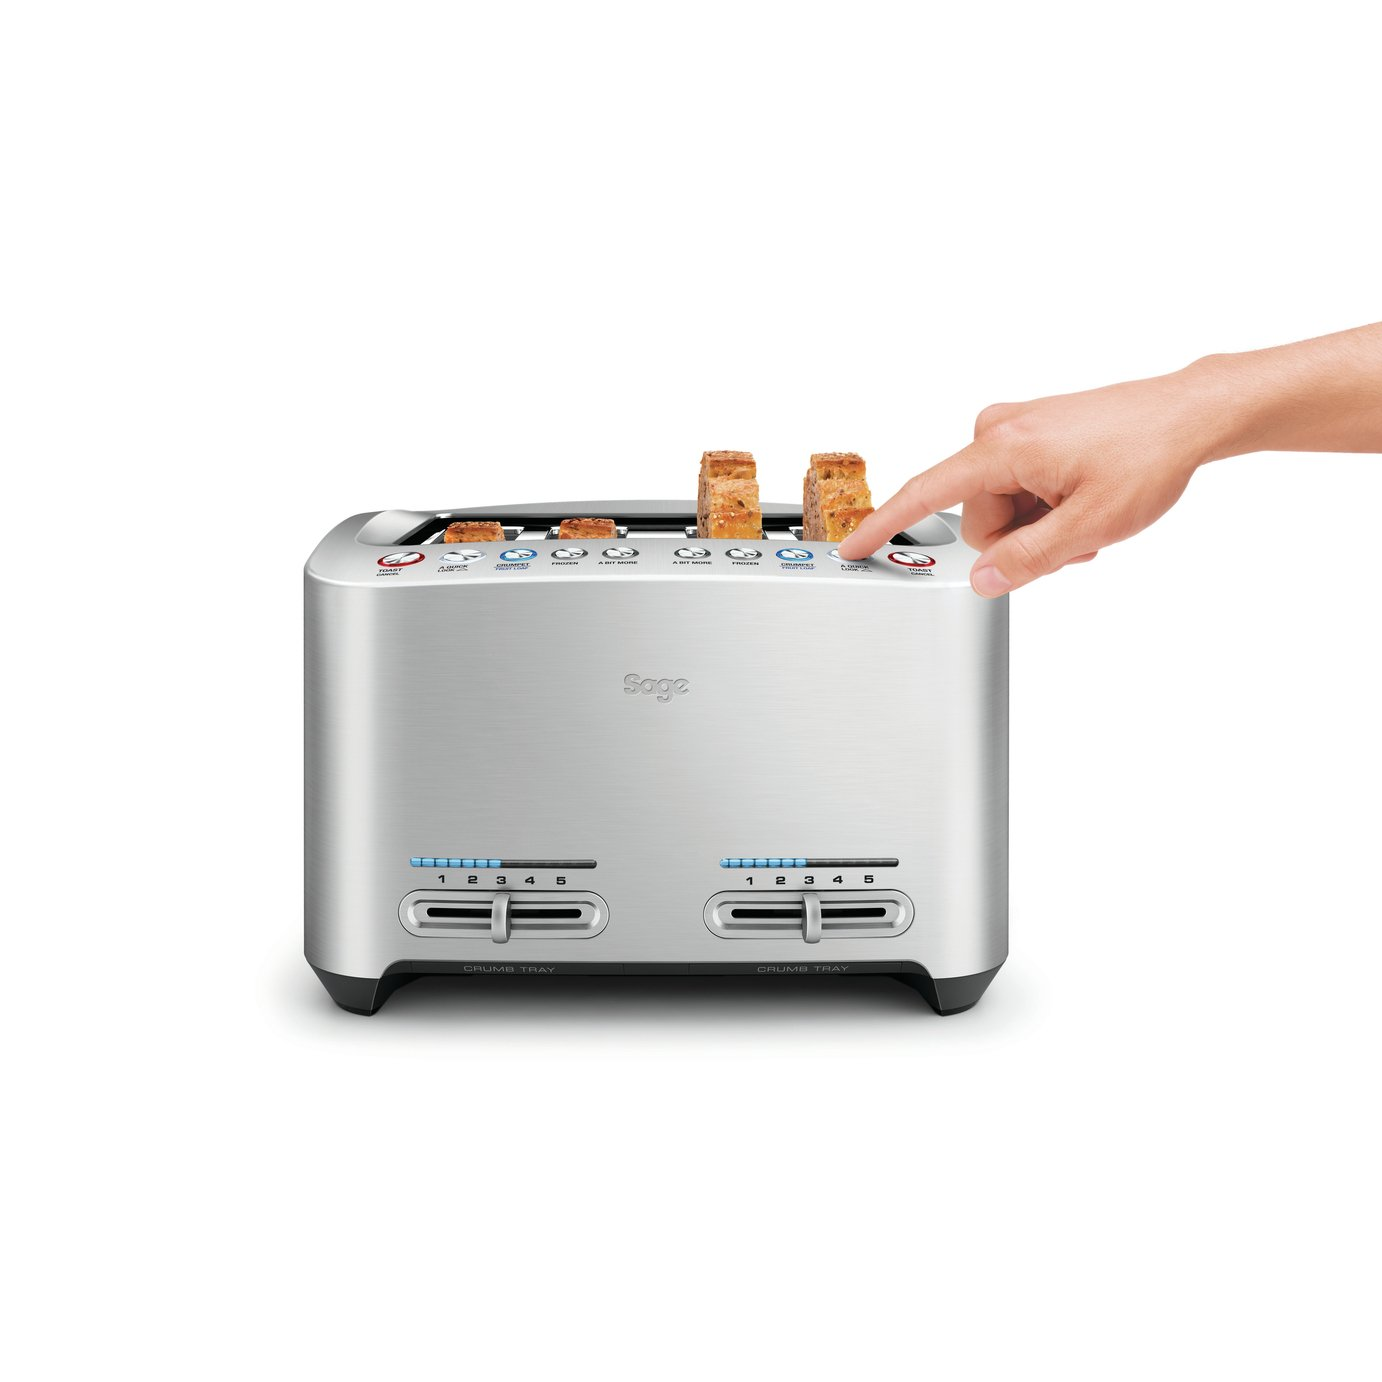 Sage The Smart 4 Slice Toaster